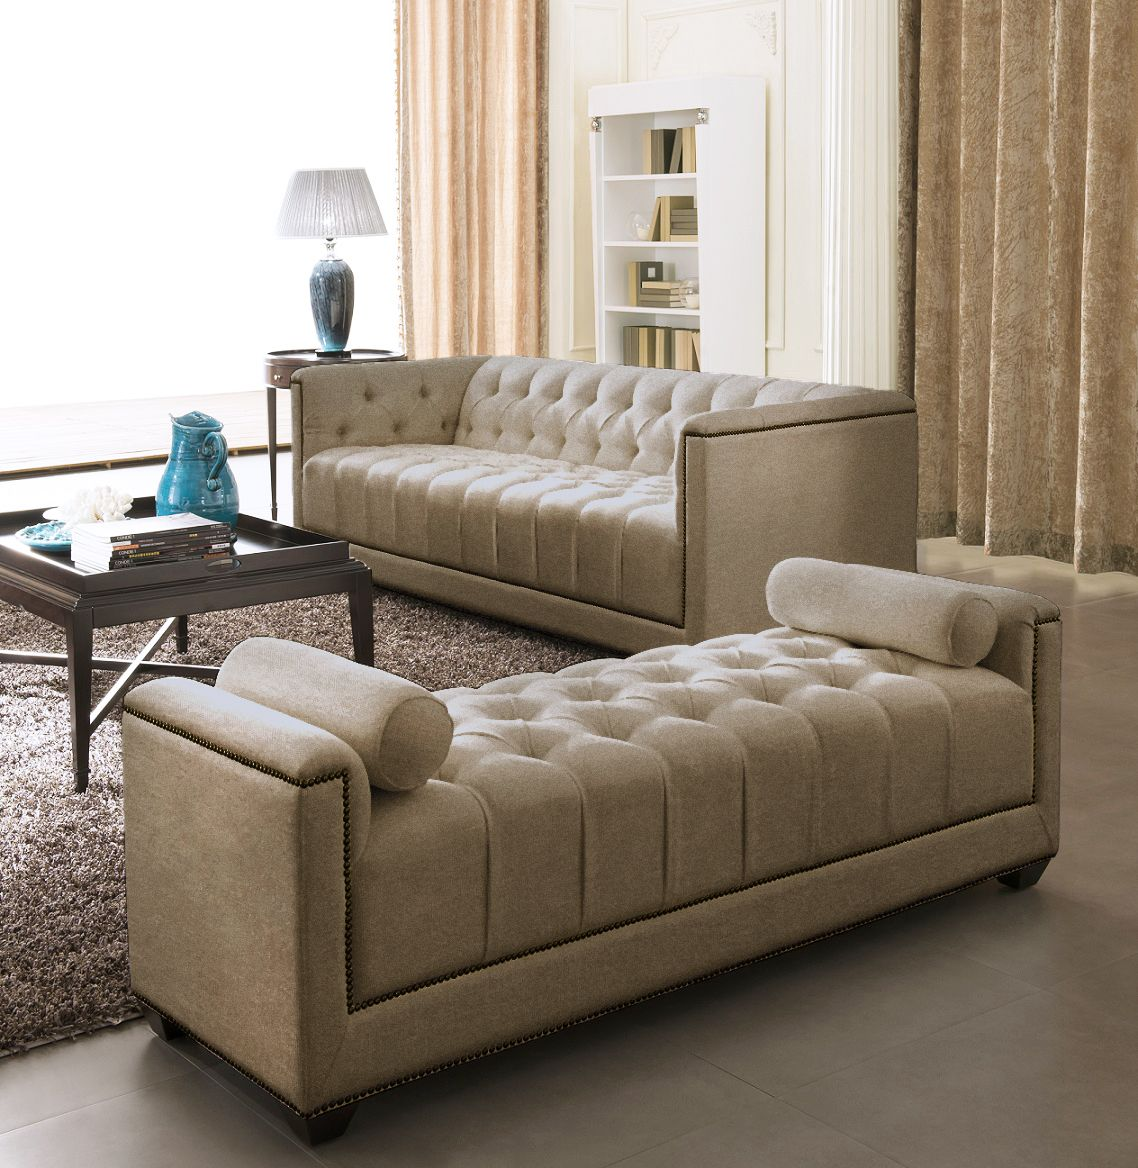 Best Modern Sofa Set Designs For Living Room Living Room Sofa 640 x 480